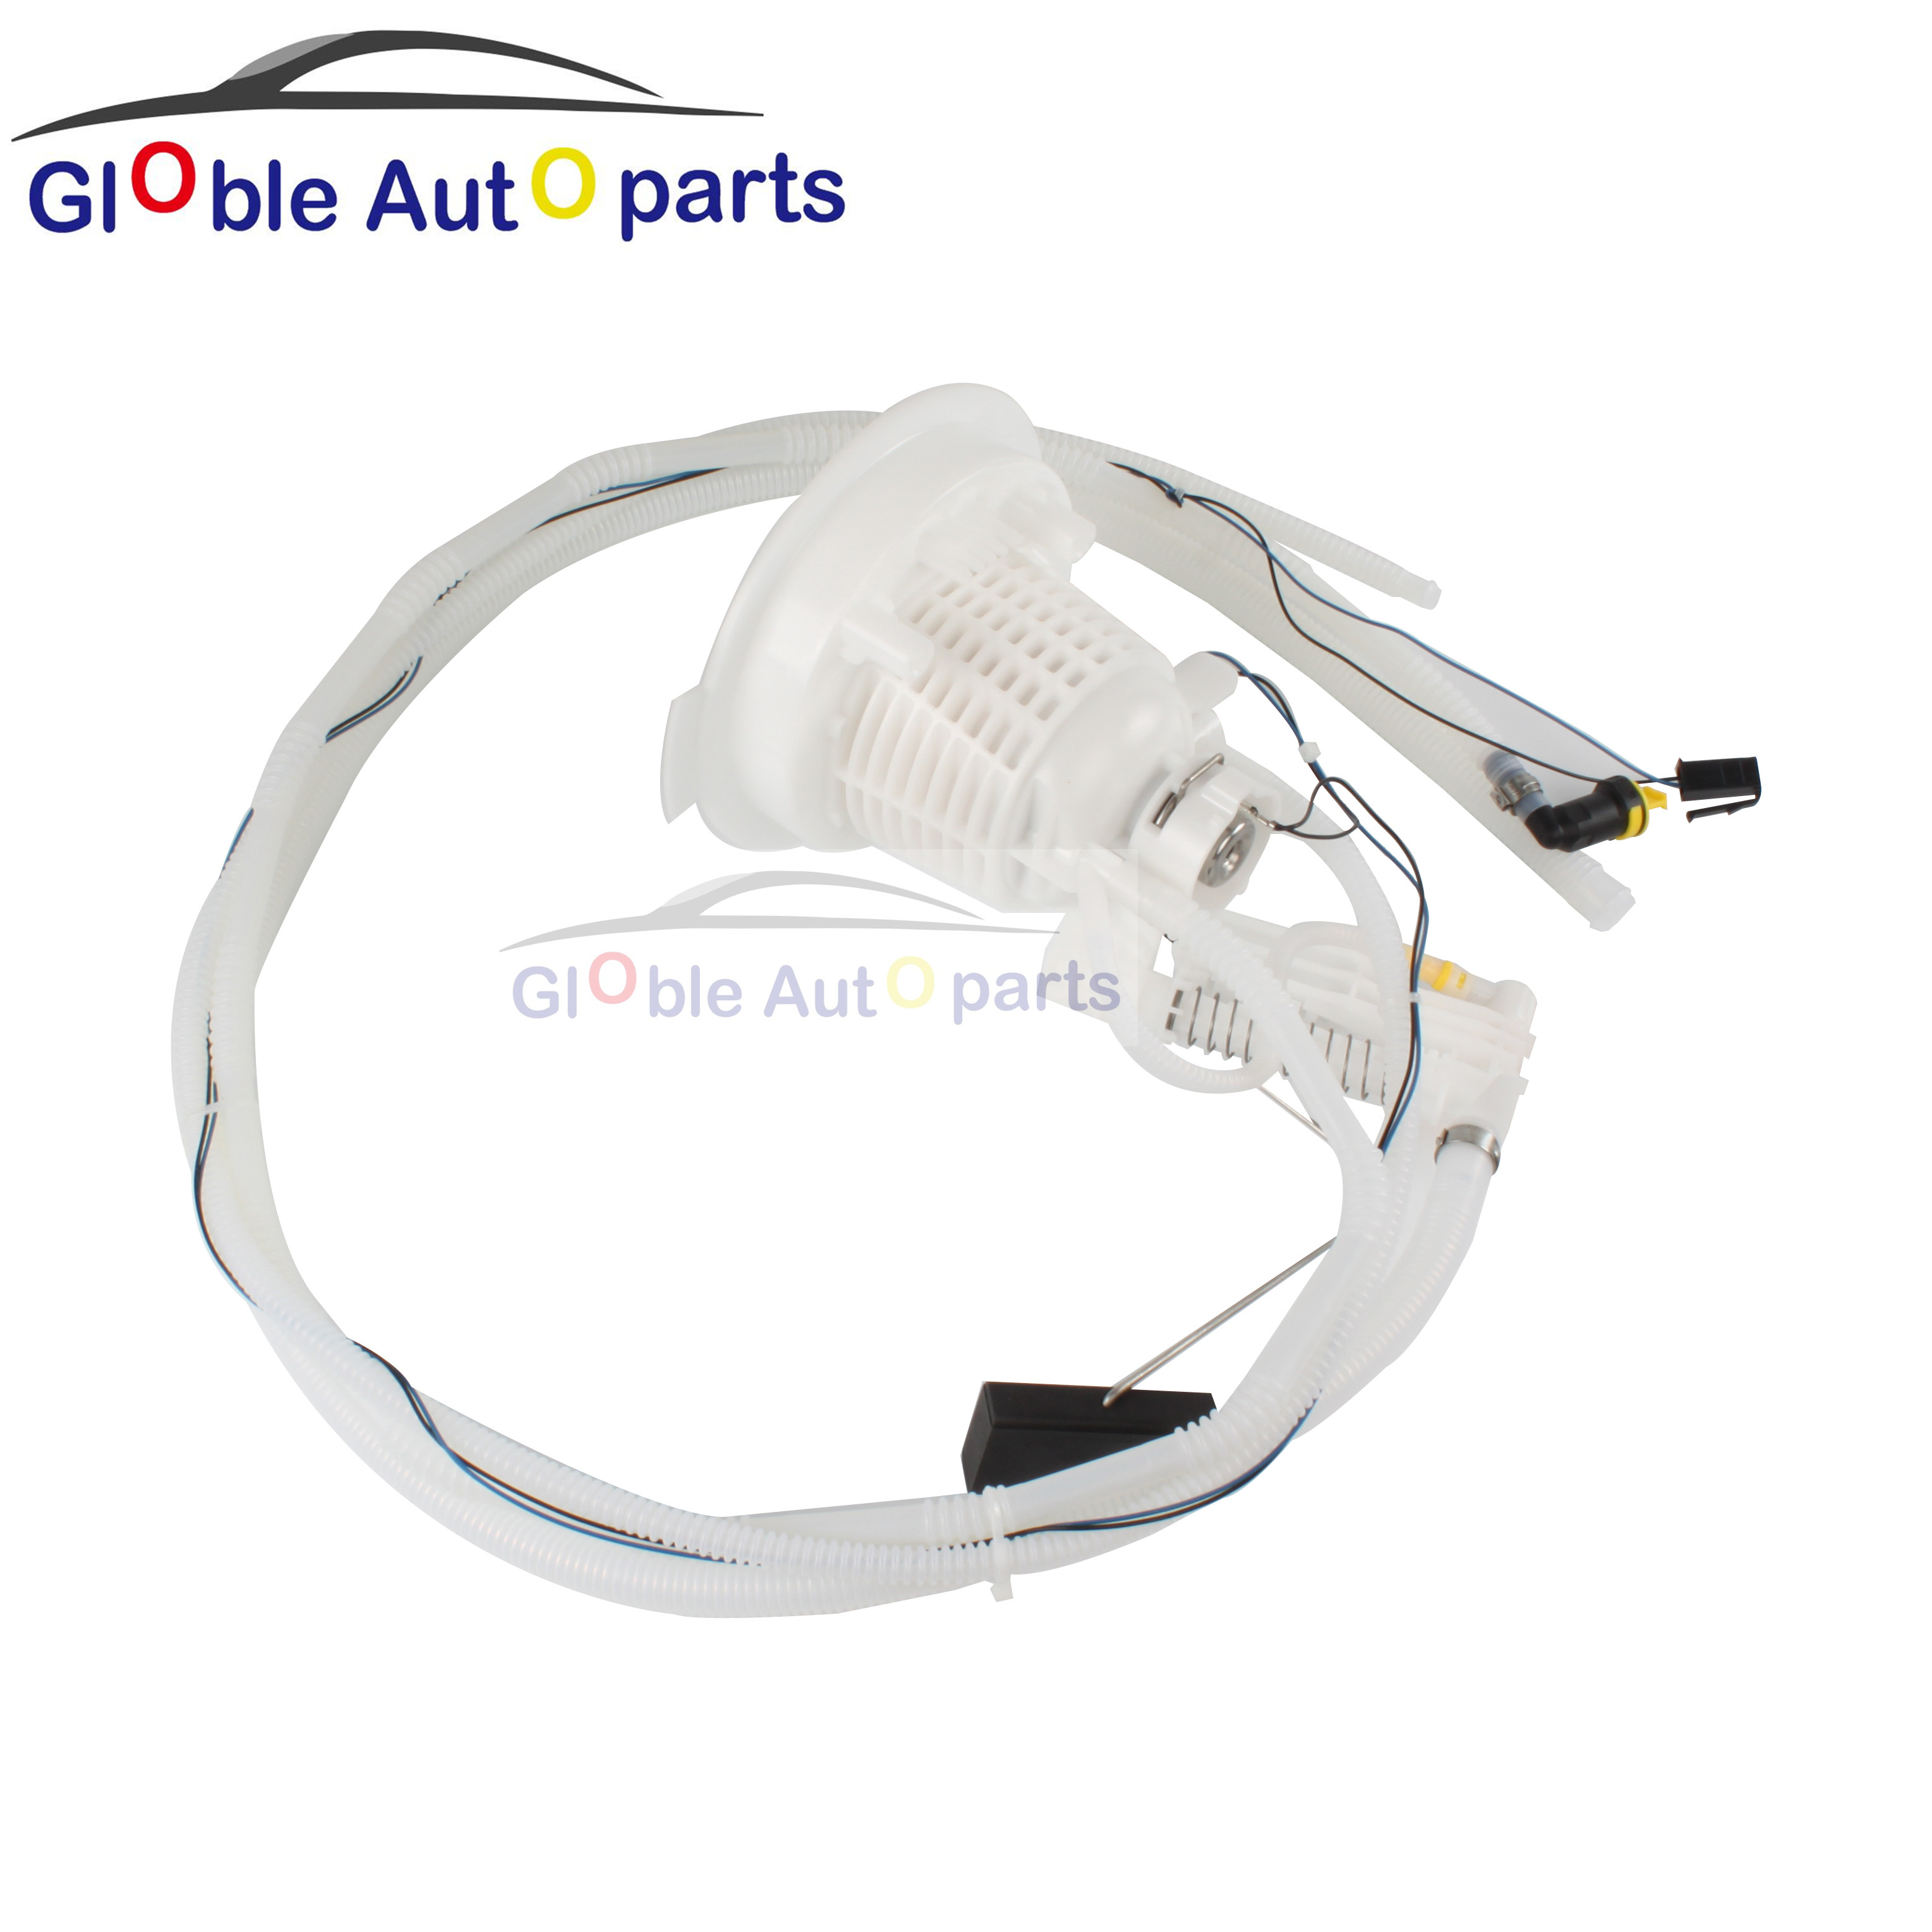 RL136023AD For Chrysler 300 05-15 Dodge Challenger 08-15  Charger 06-15 Fuel Pump Assemly Filter Oil